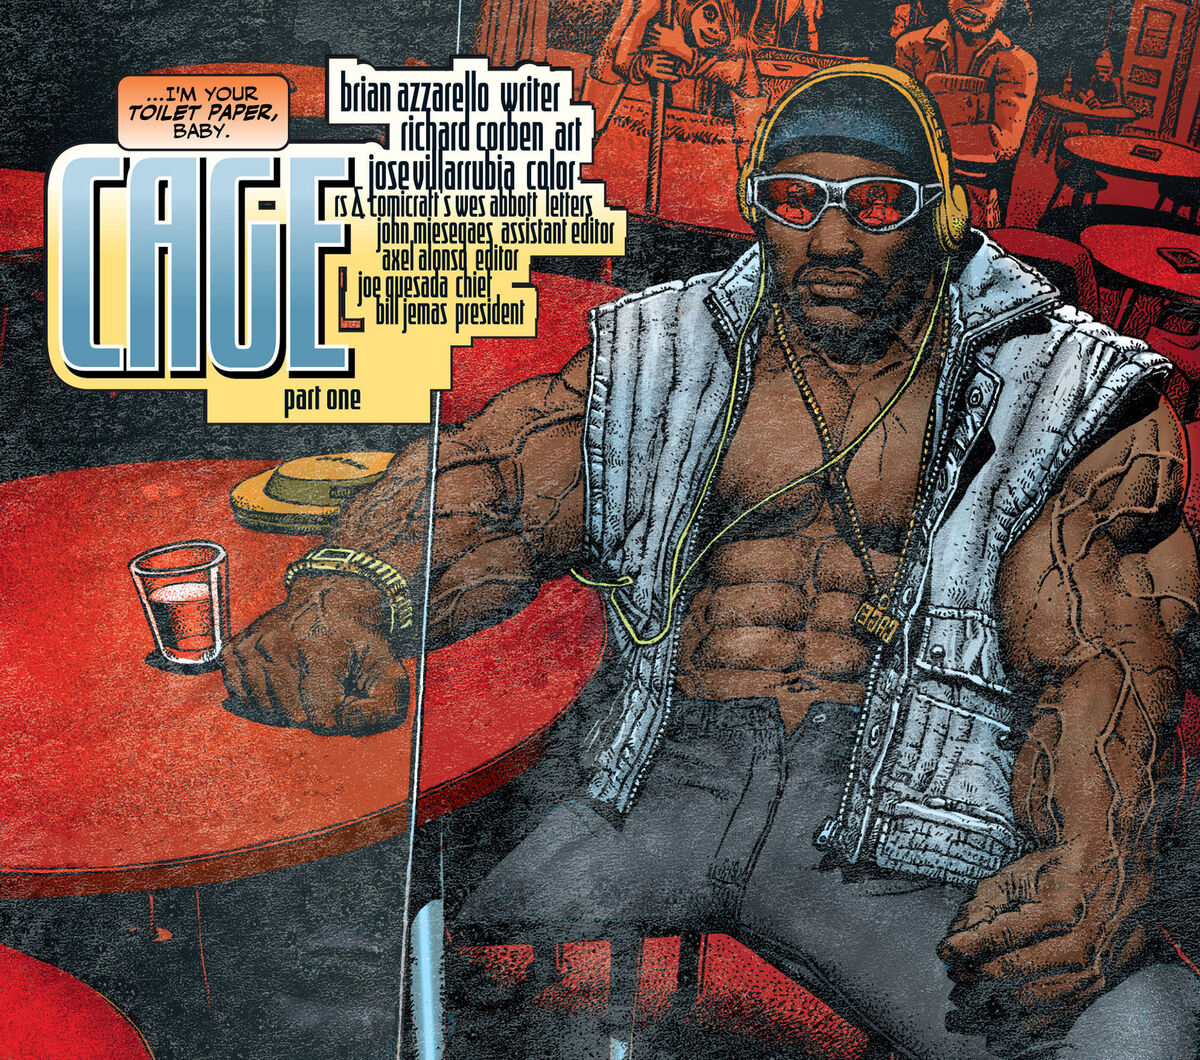 Overly buff Luke Cage in a bar looking like a rapper with sunglasses black beanie and hoodie vest